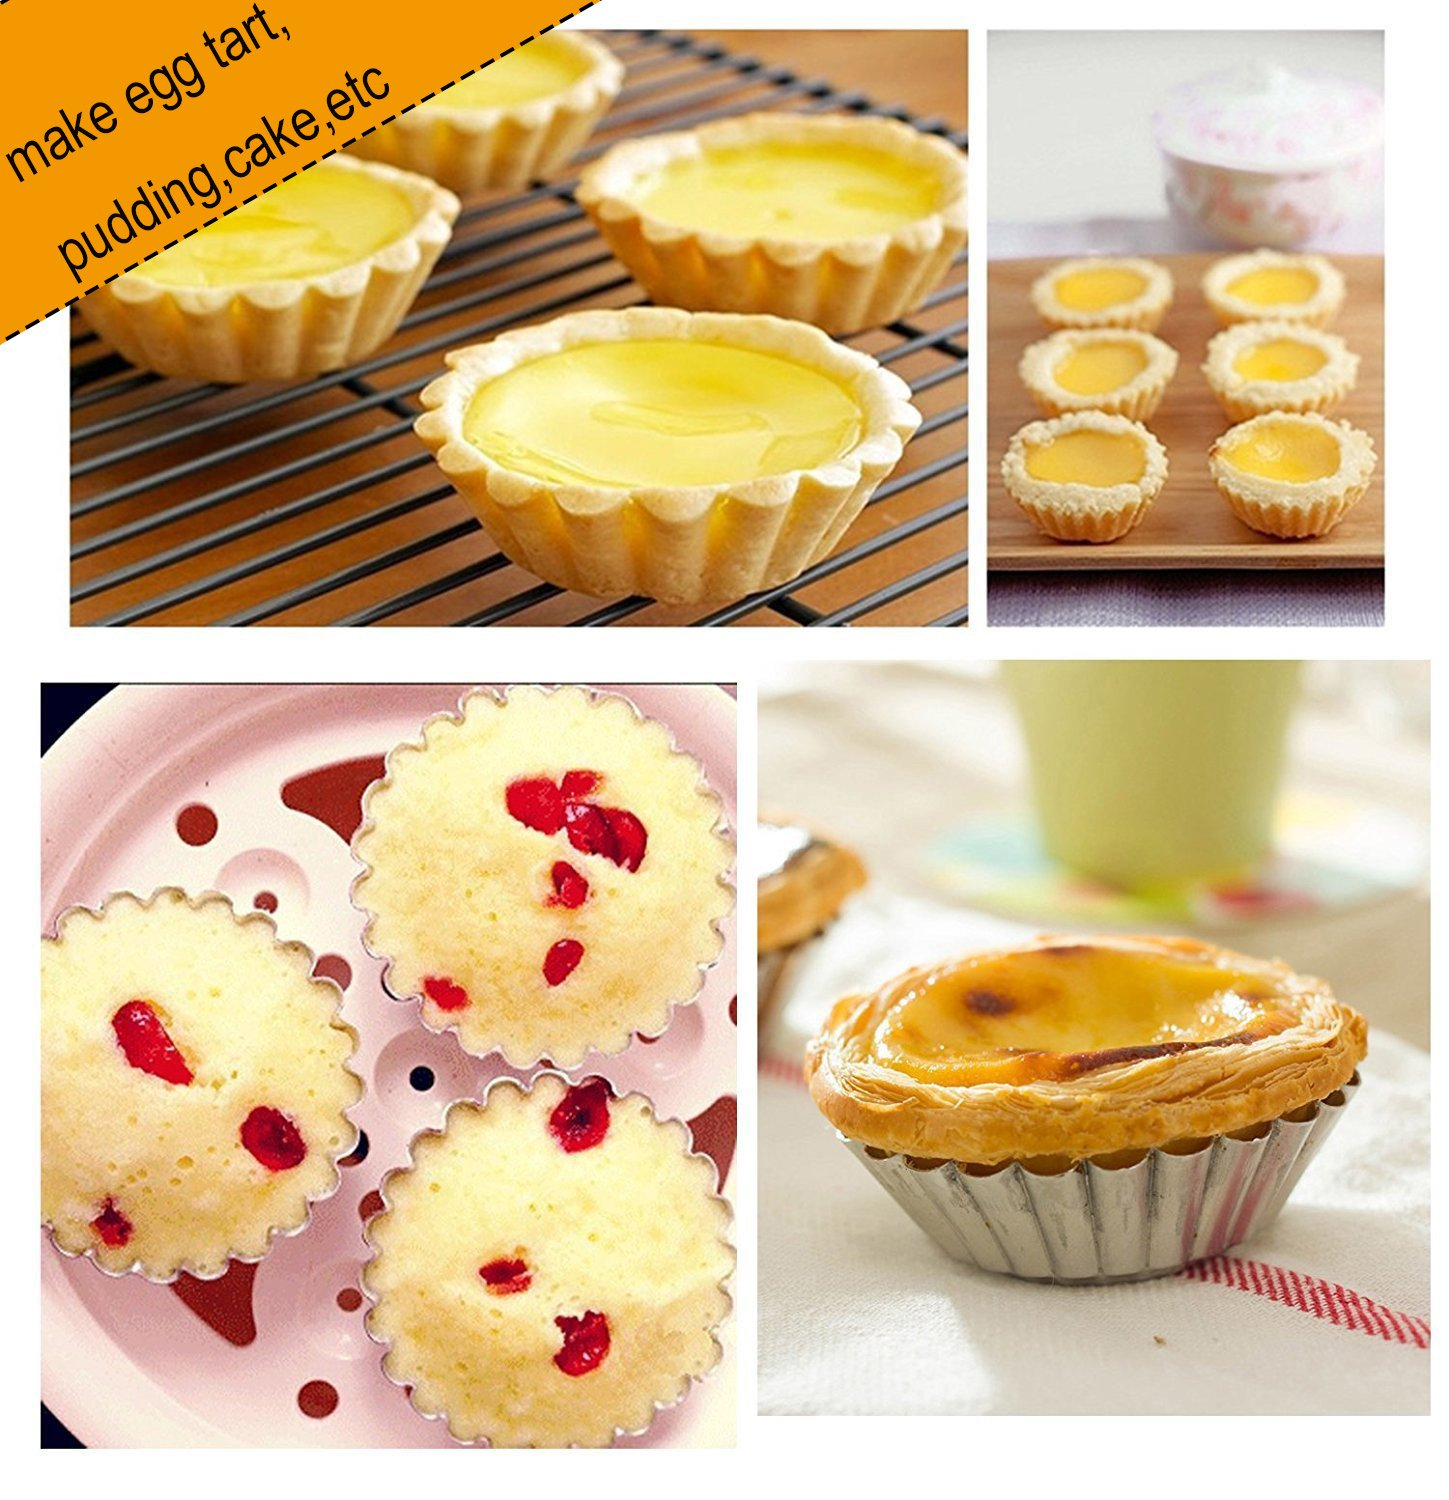 Egg Tart Mold Baking Cups Tins,50pcs Aluminum Mini Pie Pans Muffin Baking Cups Cupcake Cake Cookie Lined Mould Tin Baking Tool by Fashionclubs (Image #4)